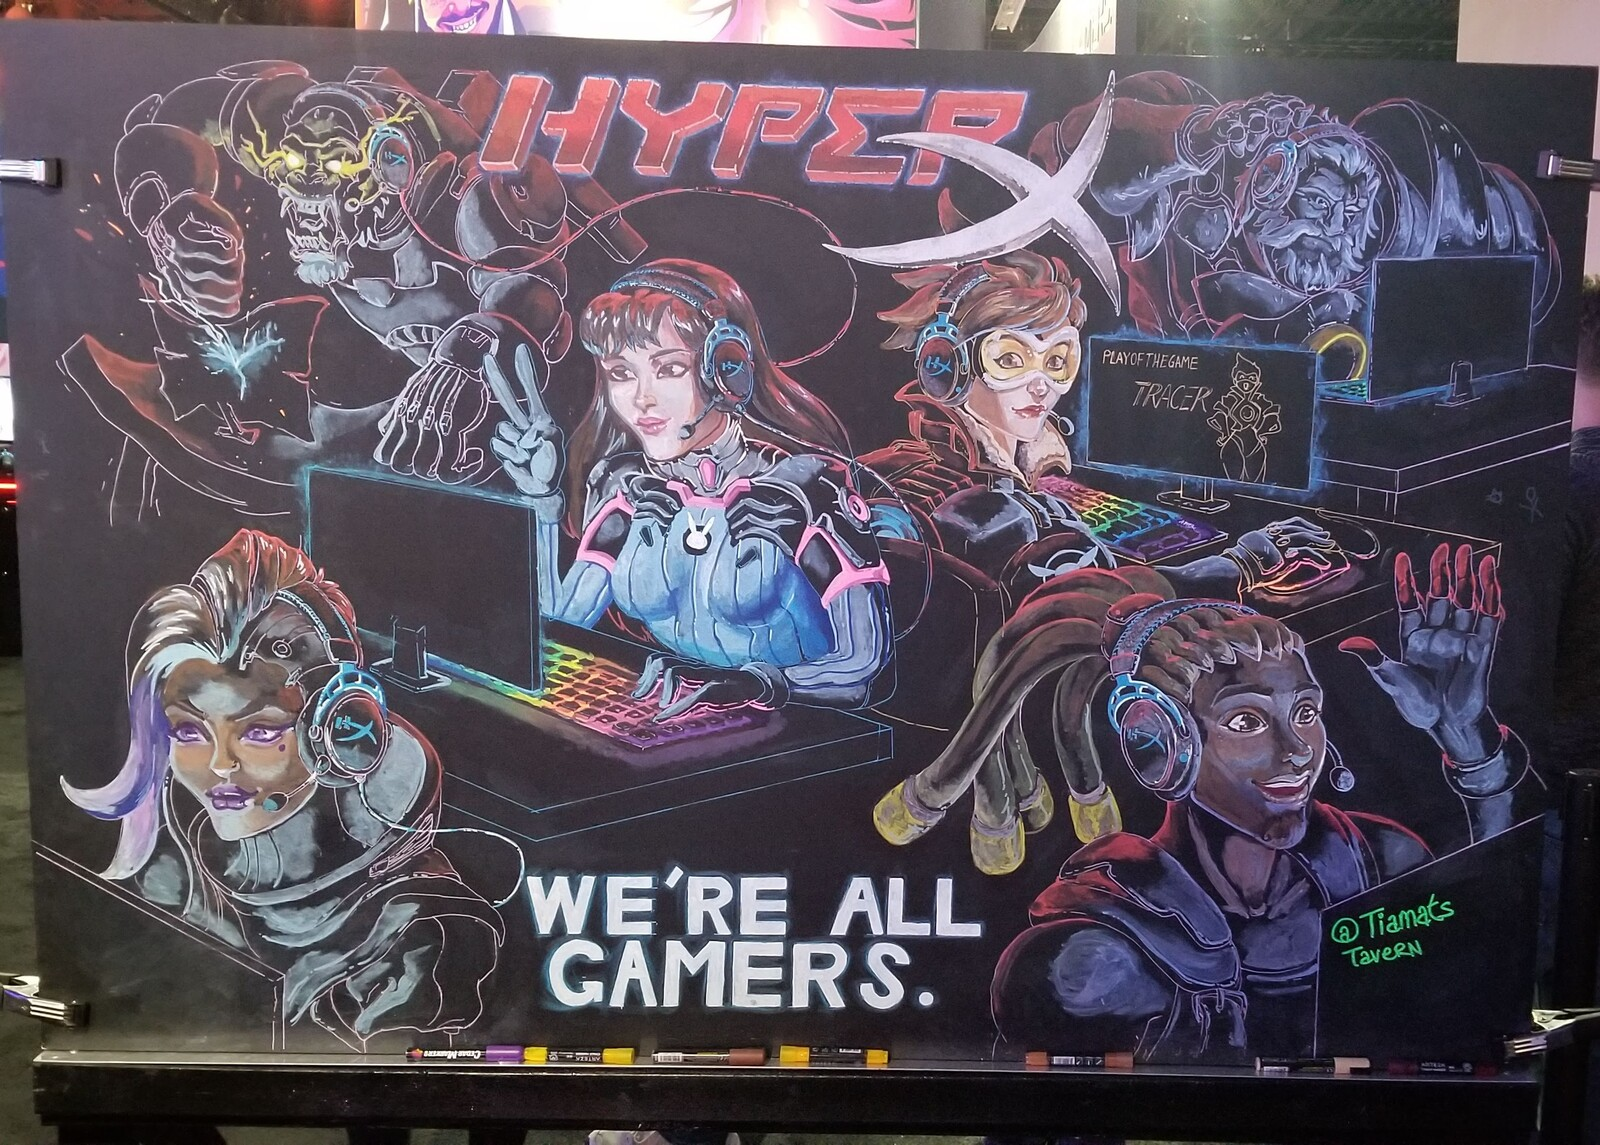 "I got the opportunity to work with HyperX at BlizzCon and it was the coolest thing I've ever done! I would do it again in a heartbeat. There's a lot I wish I could change or ""fix"" about this, but I'm proud of it."